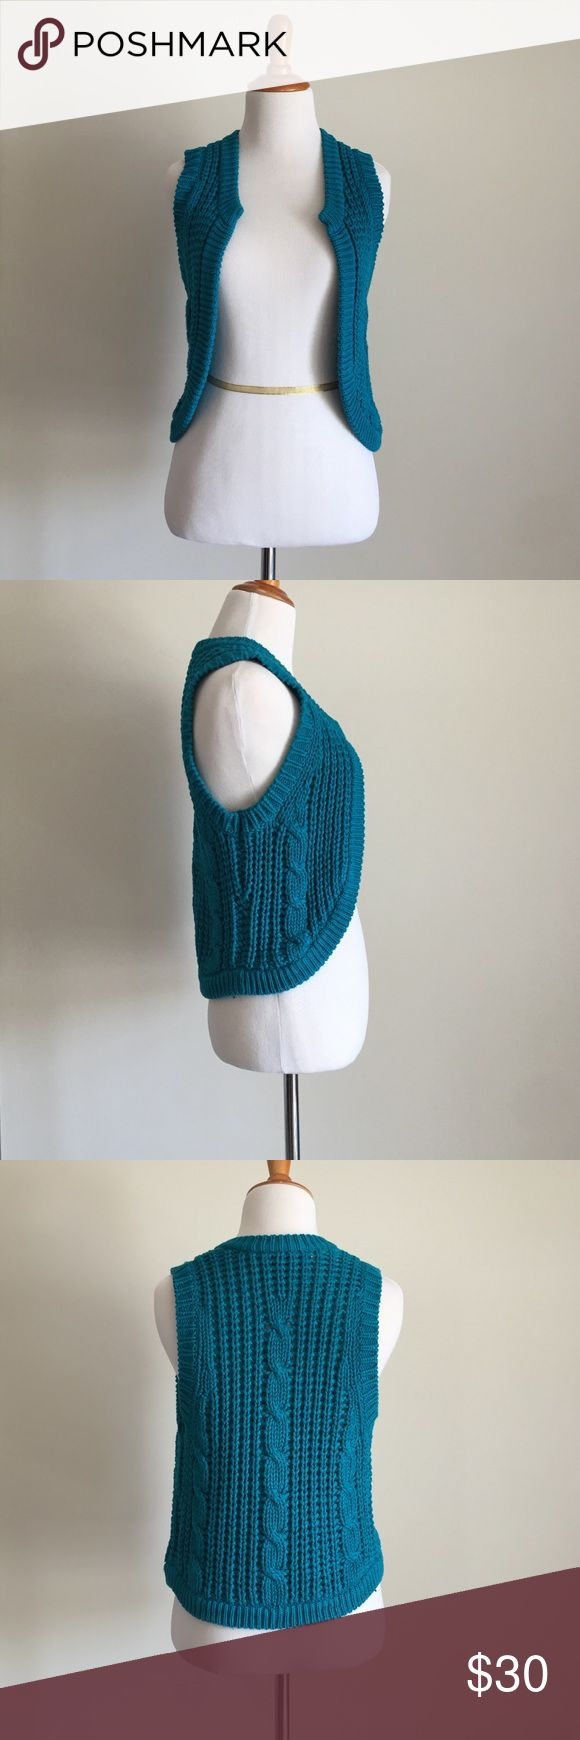 French Connection Teal Knit Vest Cozy up this fall in style with this teal knit vest from French Connection. 🍁 Comes from a loving, smoke-free home and only worn once. No rips, holes, or stains. French Connection Jackets & Coats Vests